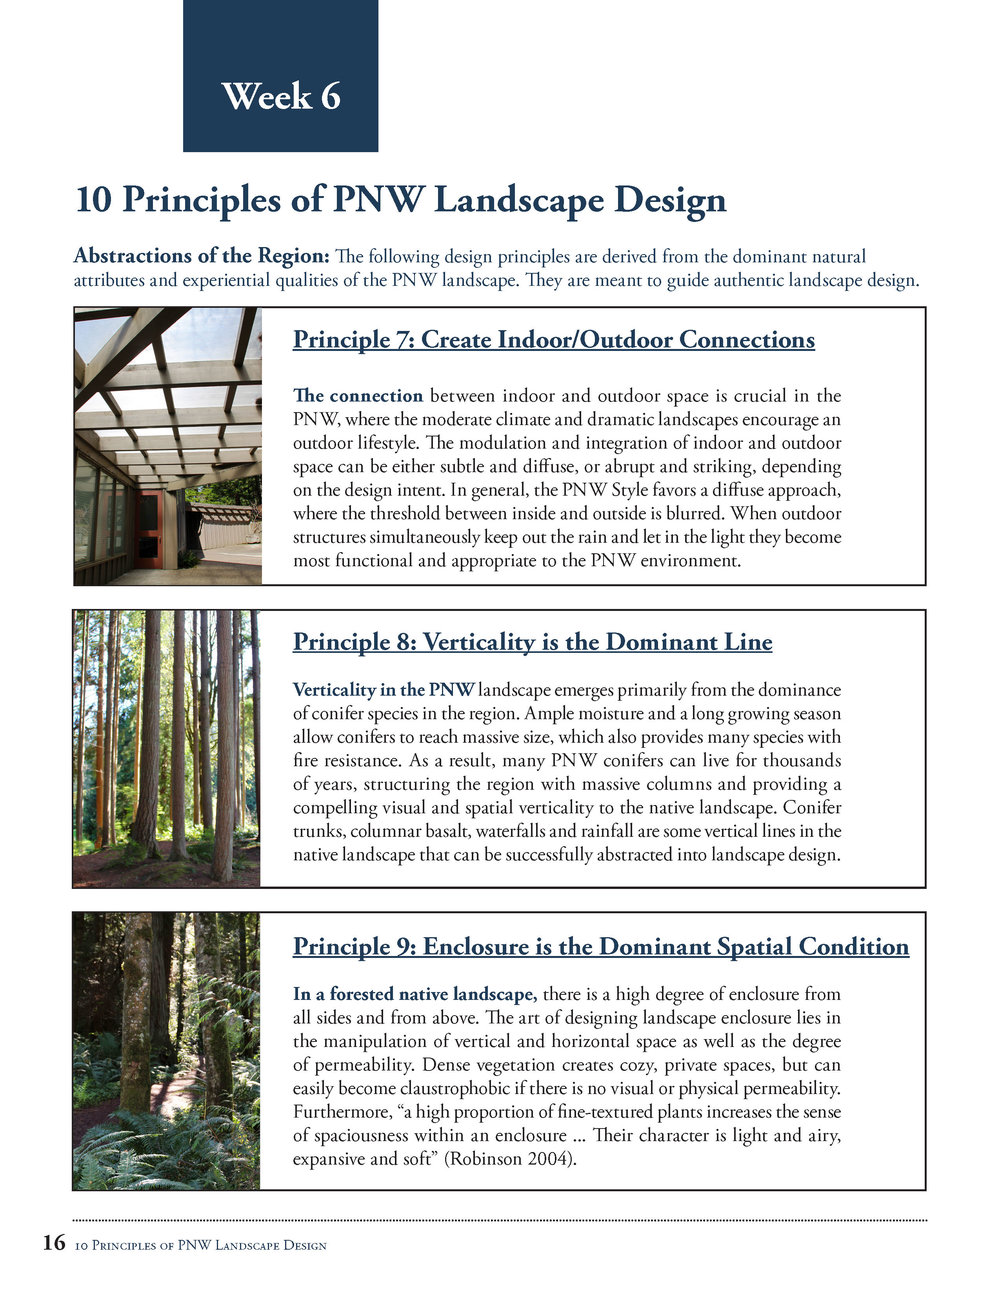 Guadagni_LCC_PNW_Workbook (dragged) 7.jpg